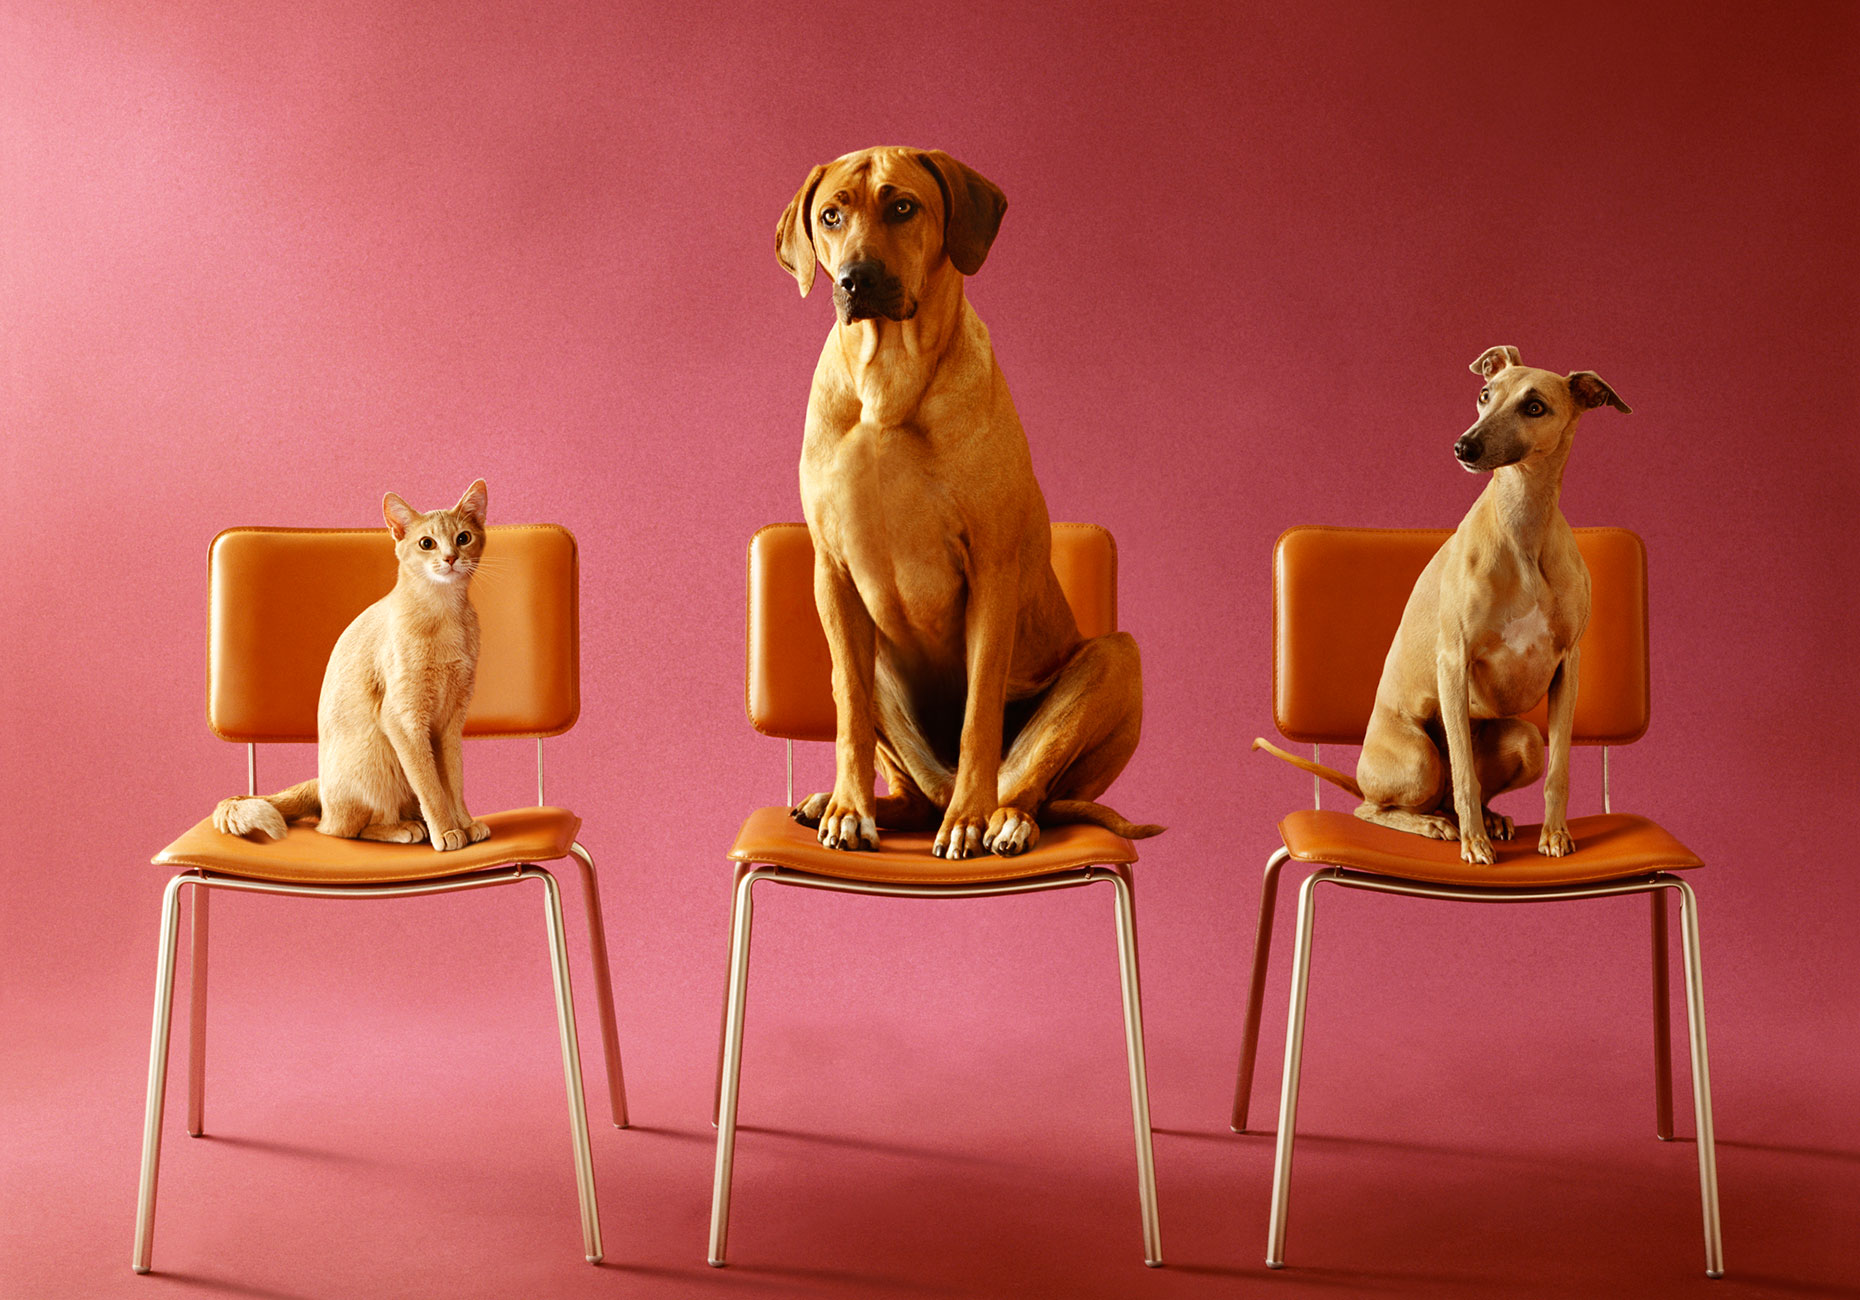 CatDogs-on-Chairs-New-Pape